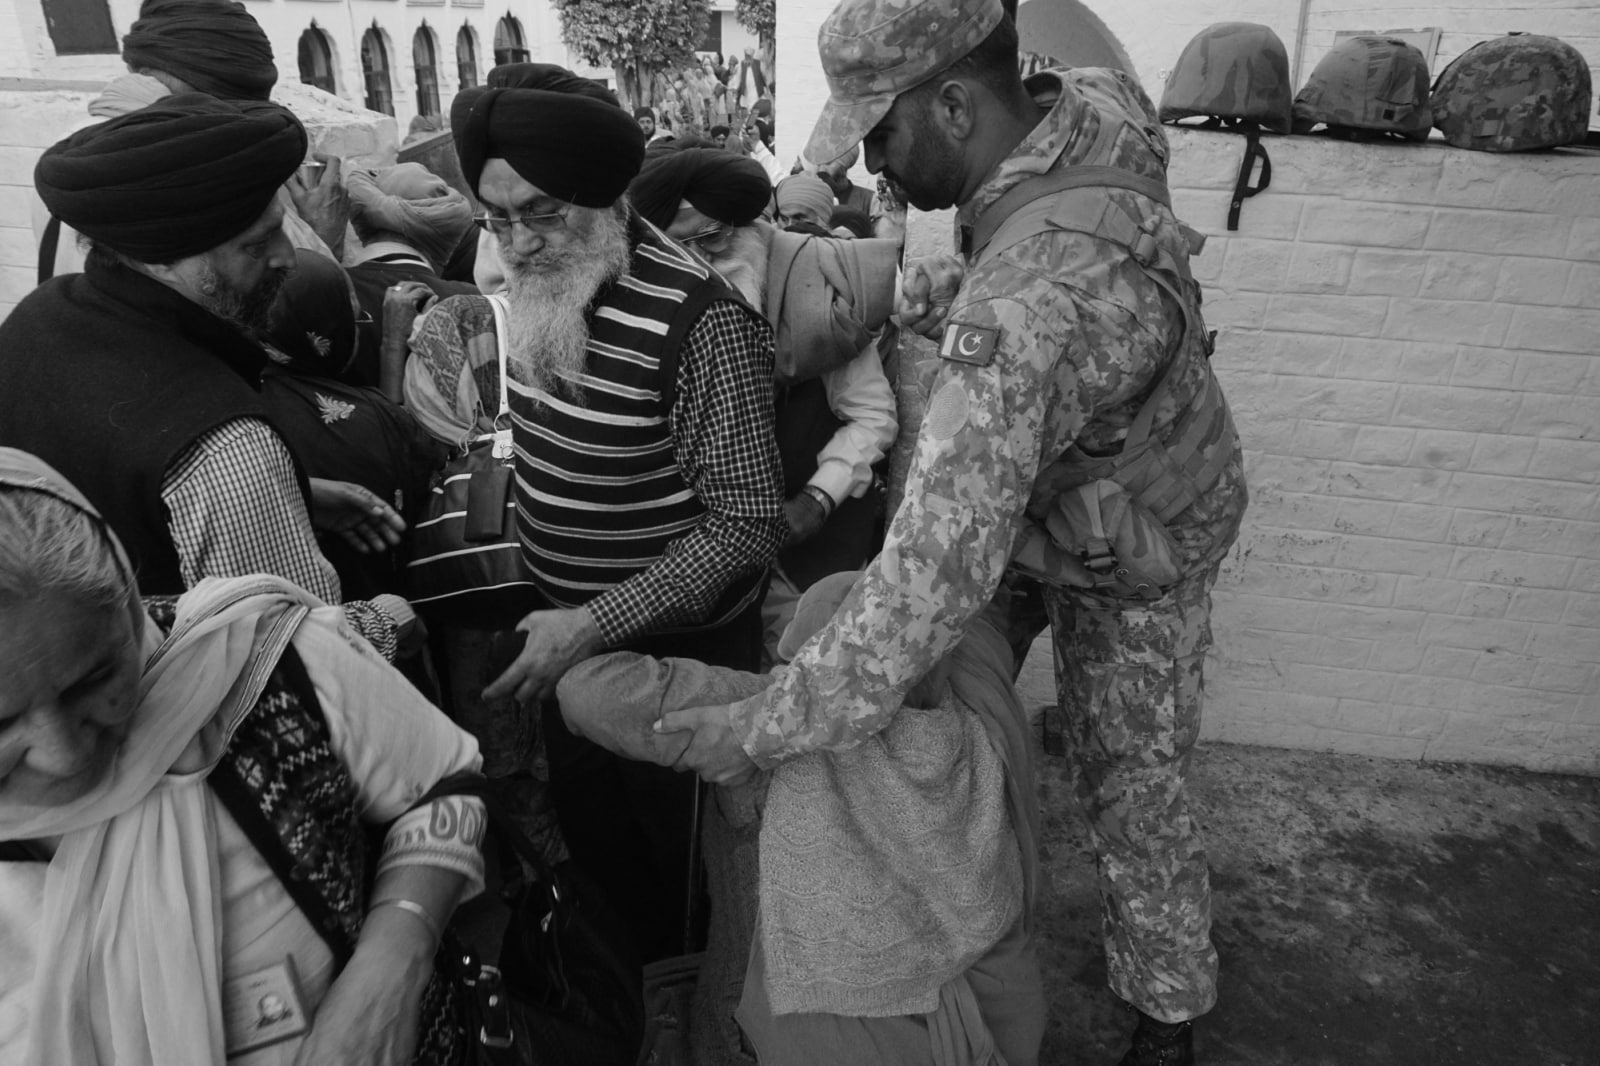 A Pakistan army officer from Punjab regiment helps a Sikh woman at the crowded doorway of the shrine.